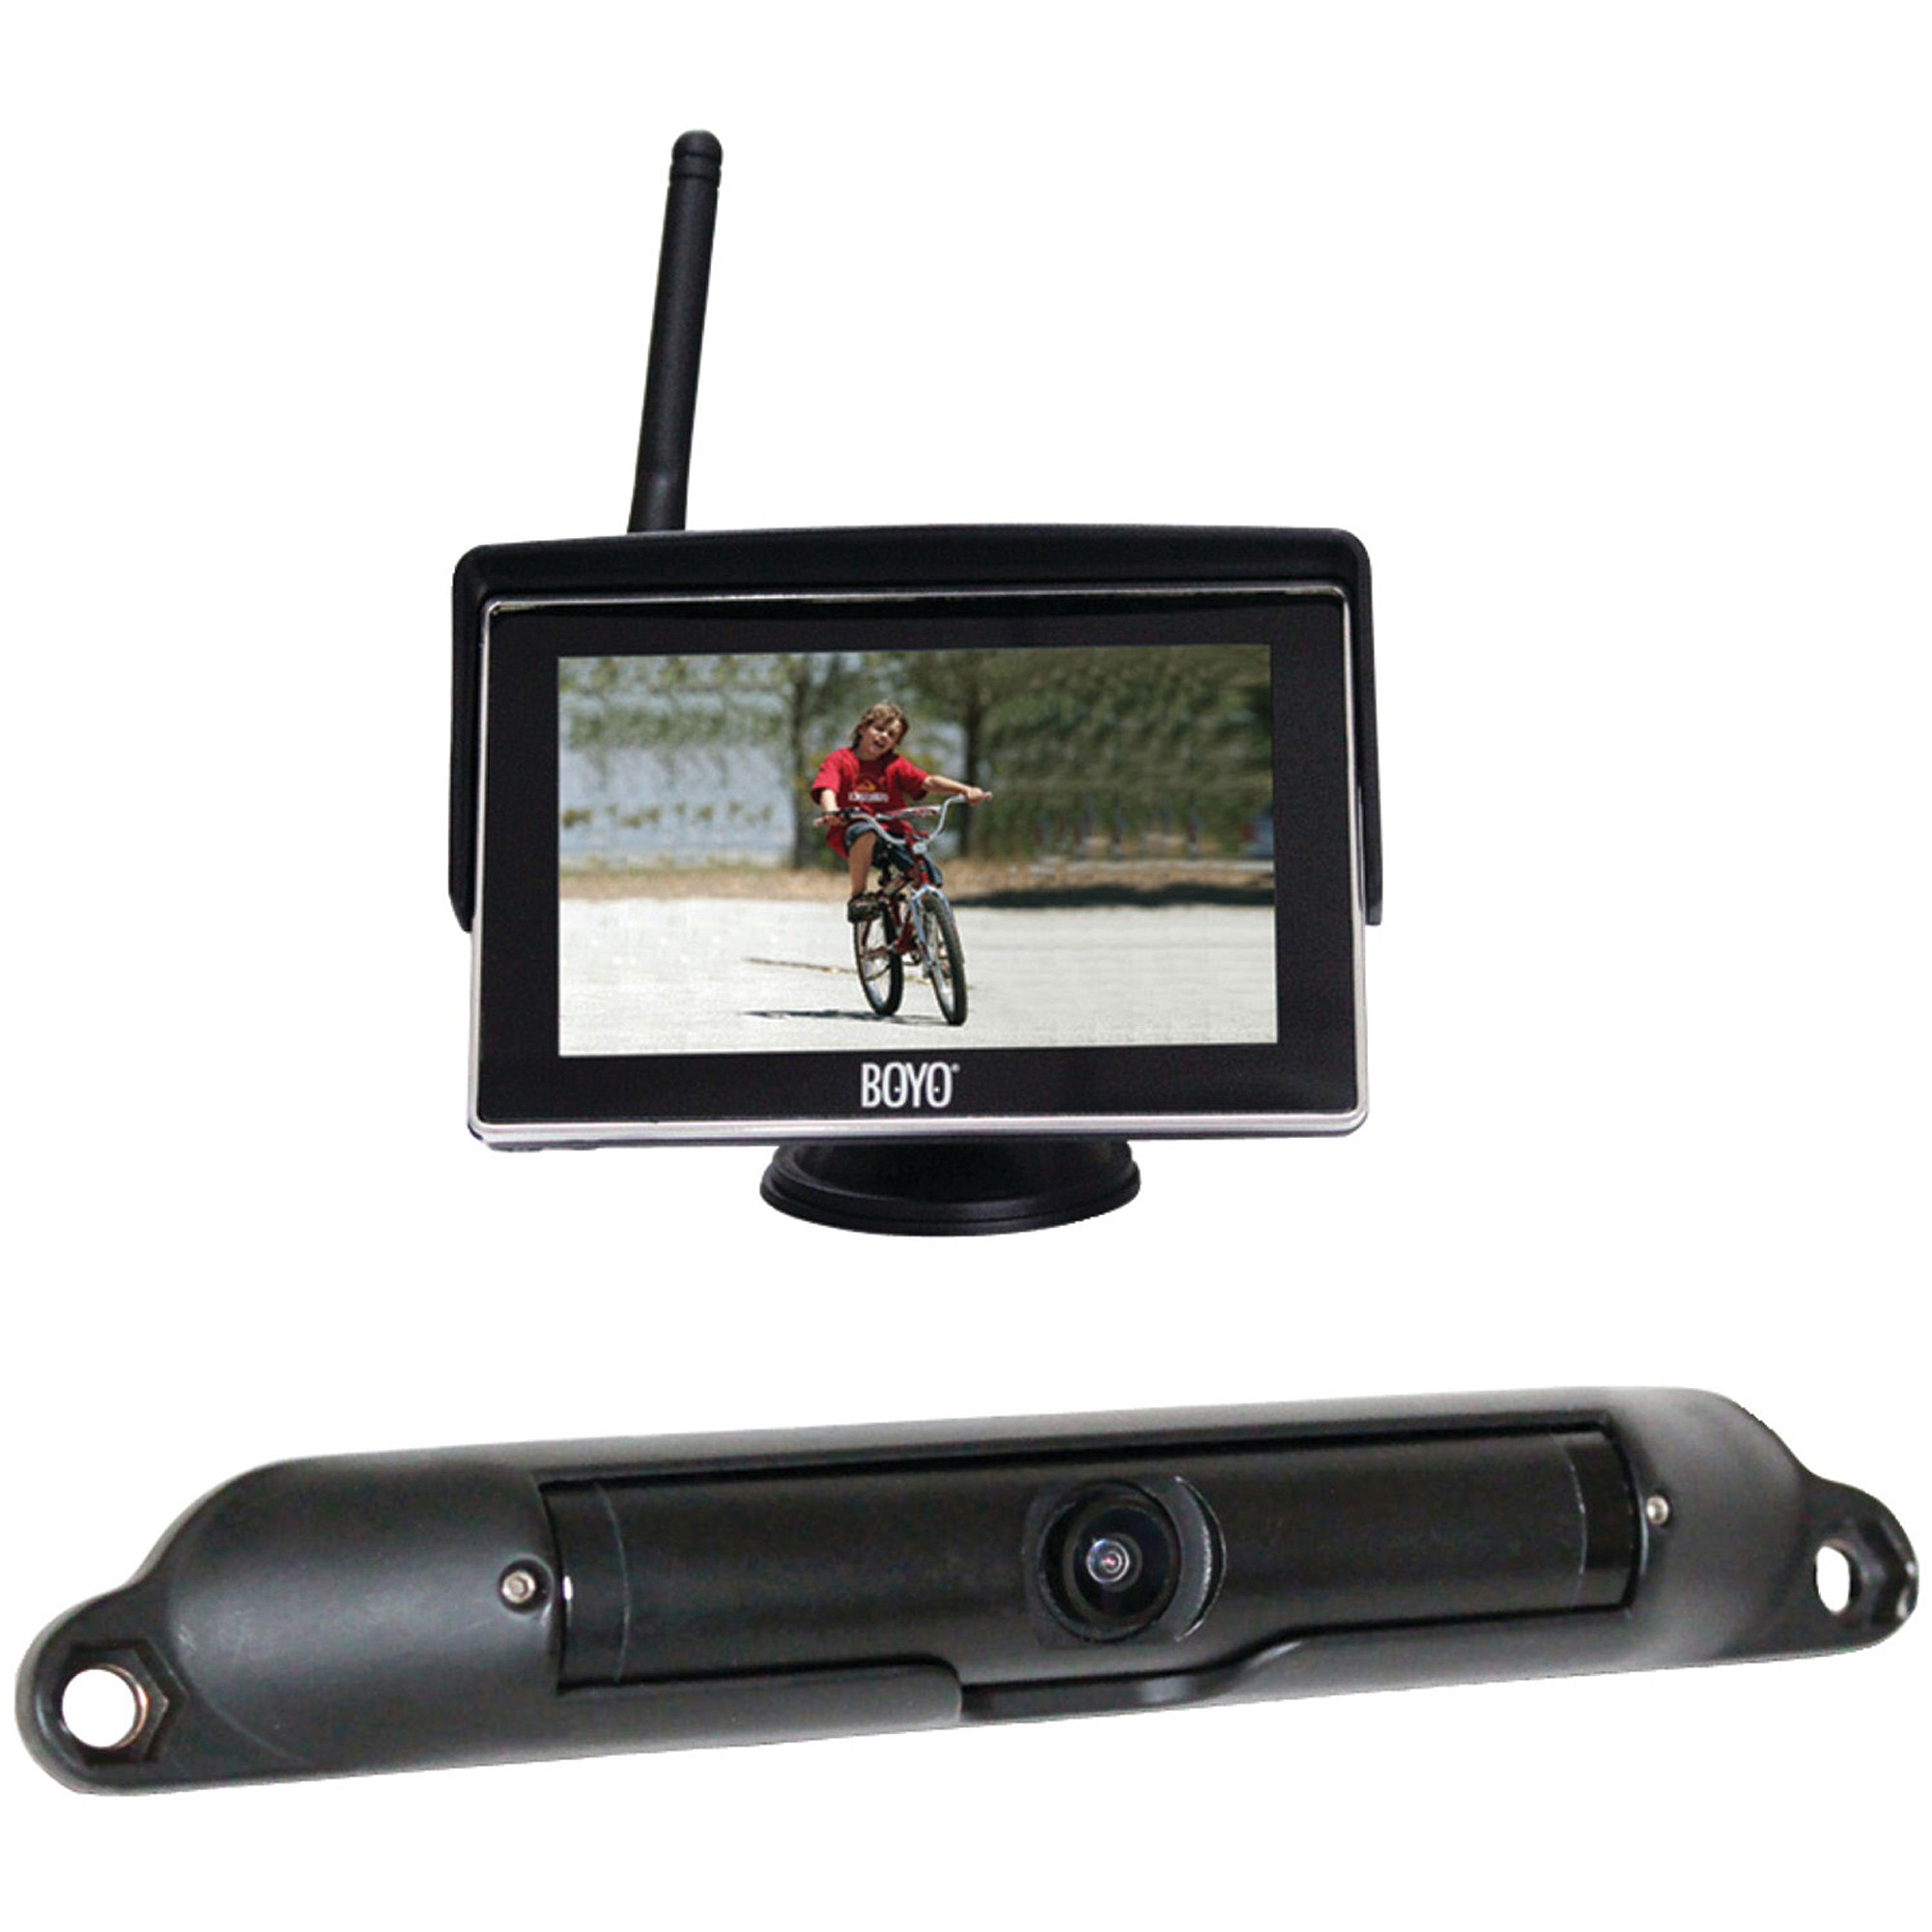 """Boyo VTC424R WiFi High-Resolution Rearview Camera System with 4.3"""" LCD Monitor"""